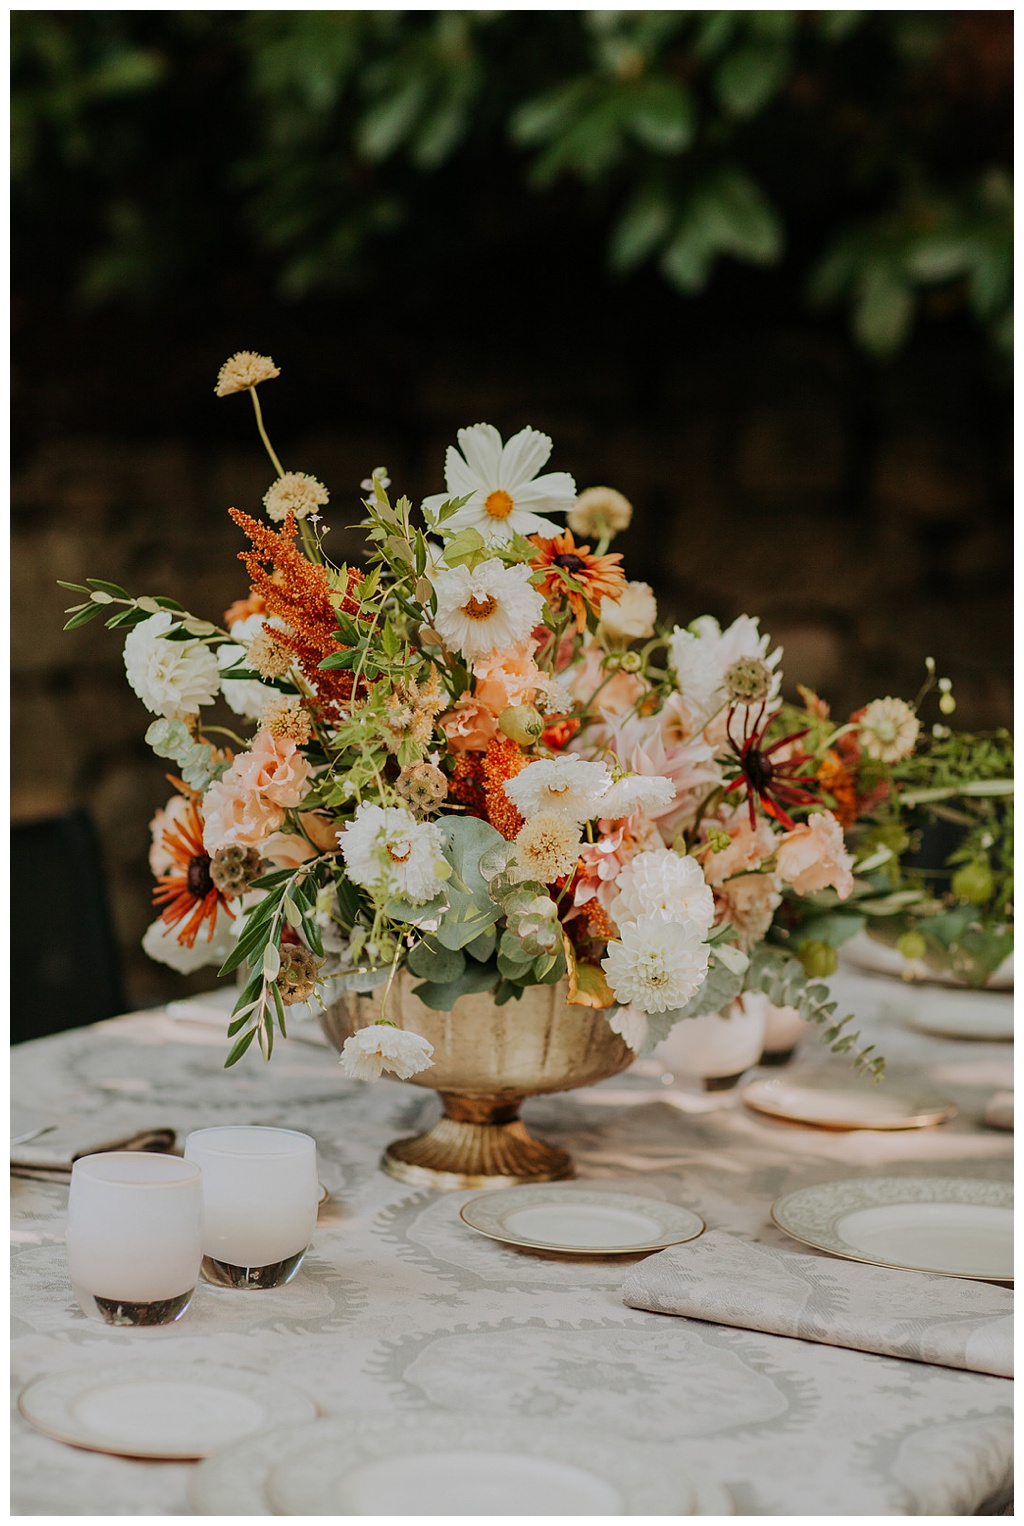 an outdoor wedding table with fine china, antique silver, and a boho floral centerpiece full of neutral and earthy flowers